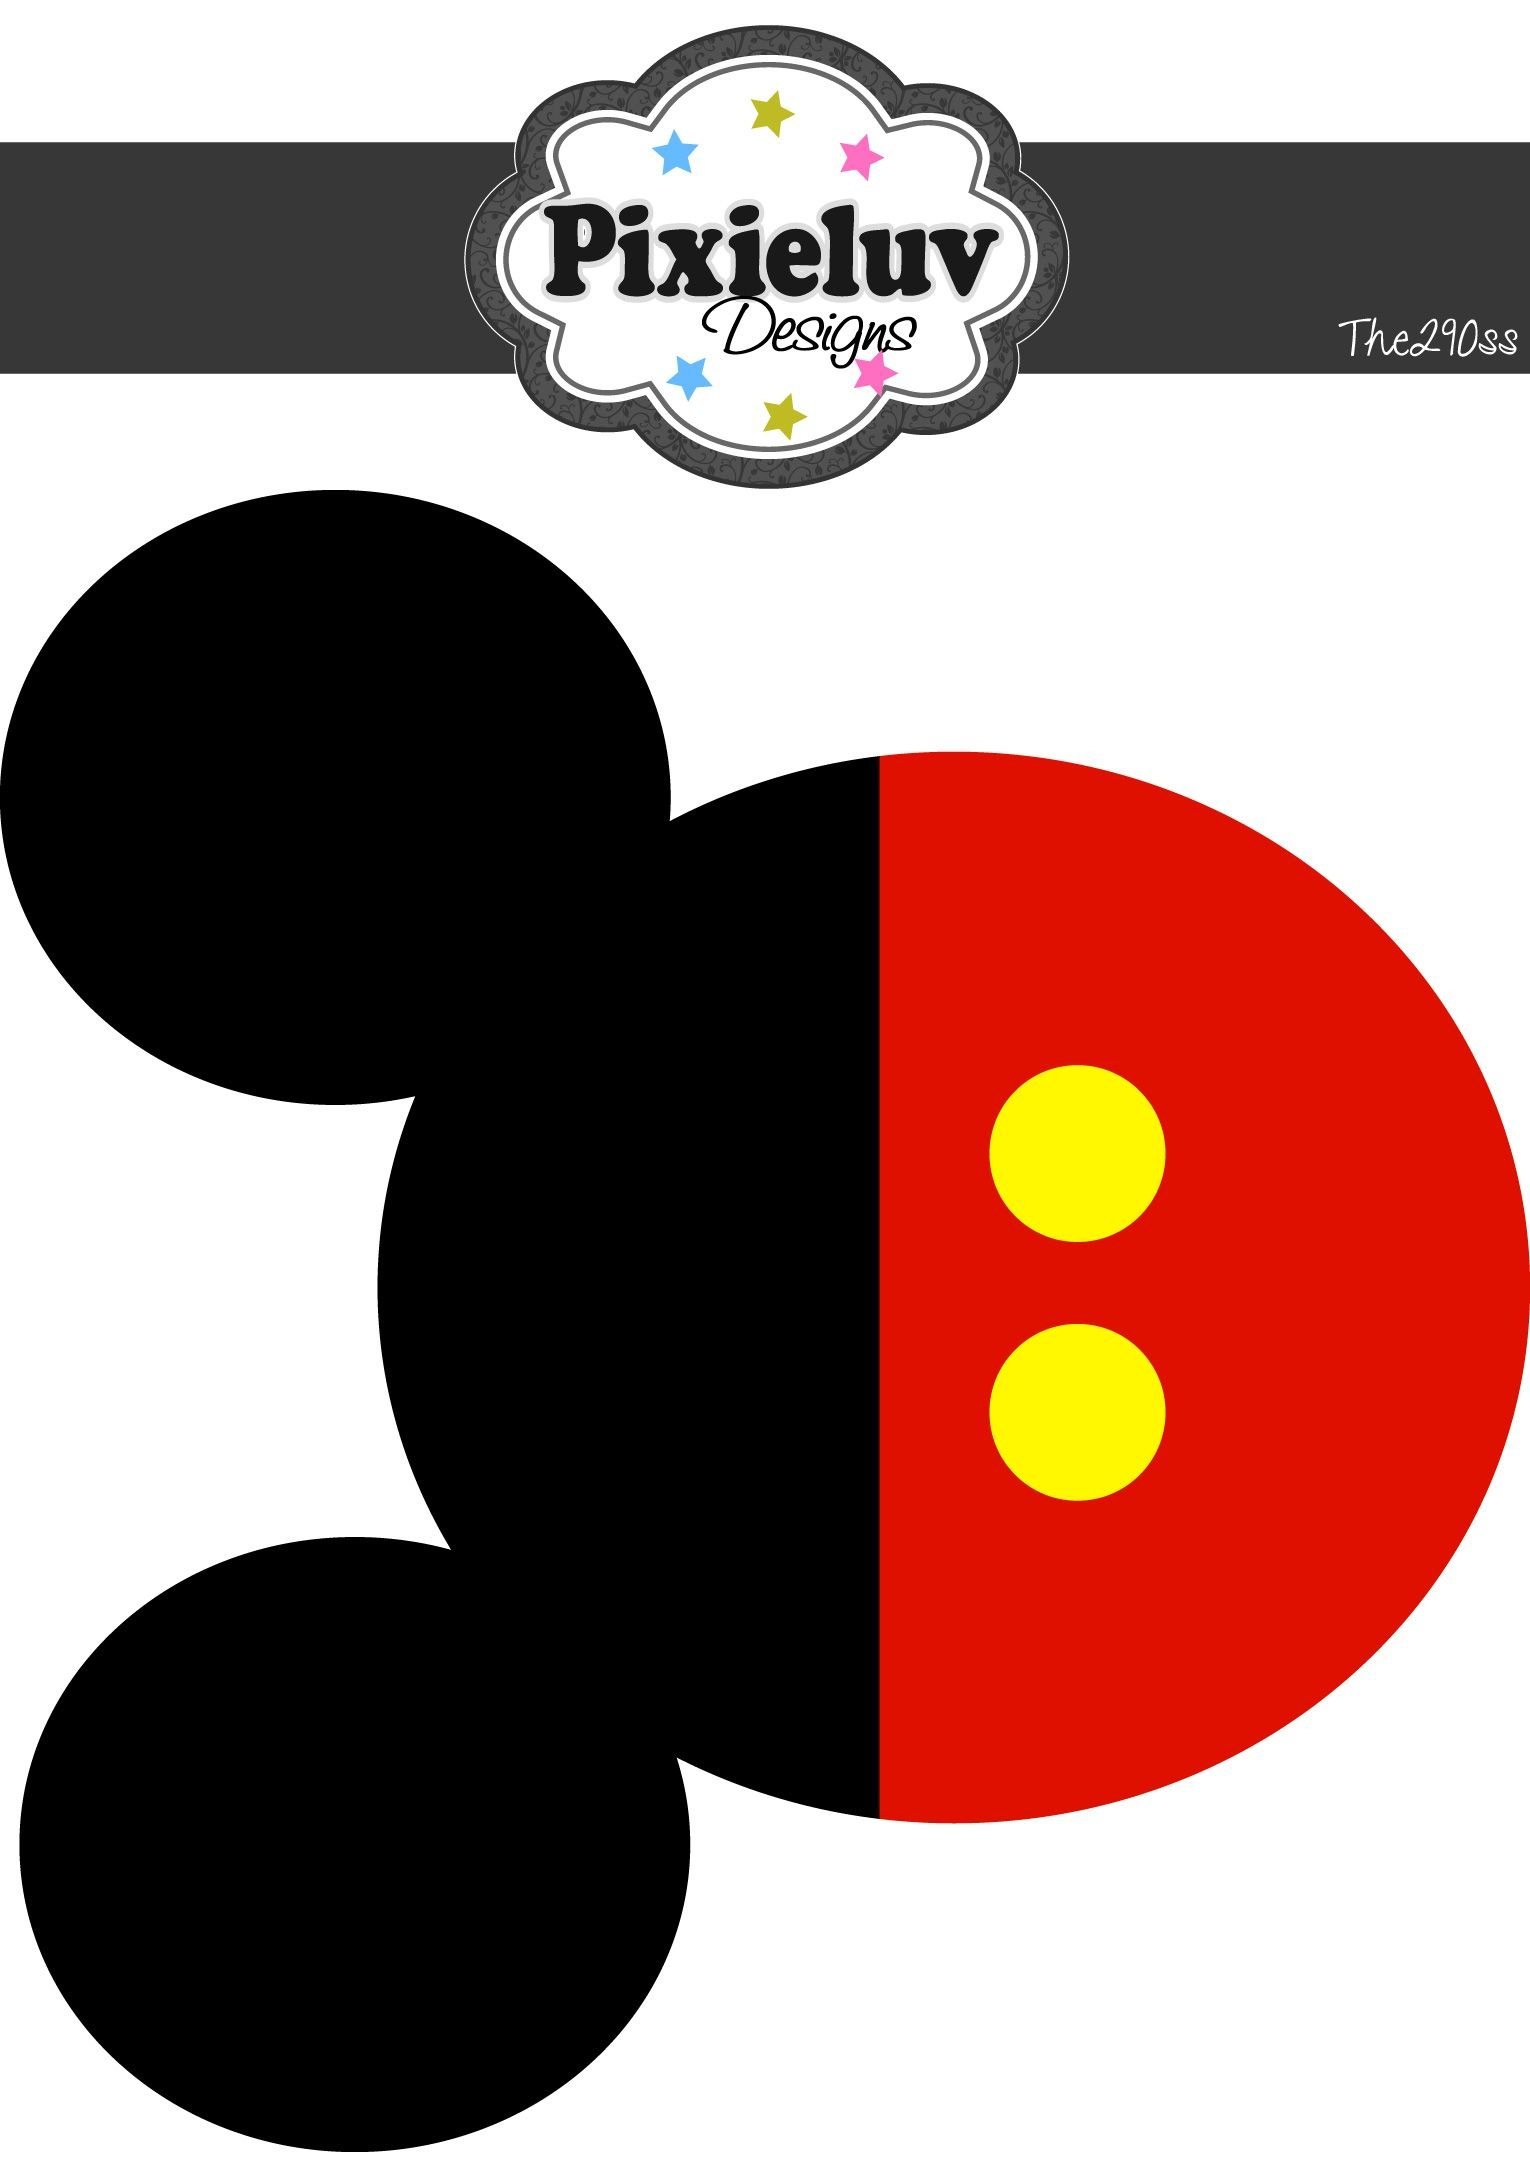 Mickey Mouse Birthday Banner Free Printables.i Am Sure I Could - Free Printable Mickey Mouse Birthday Banner